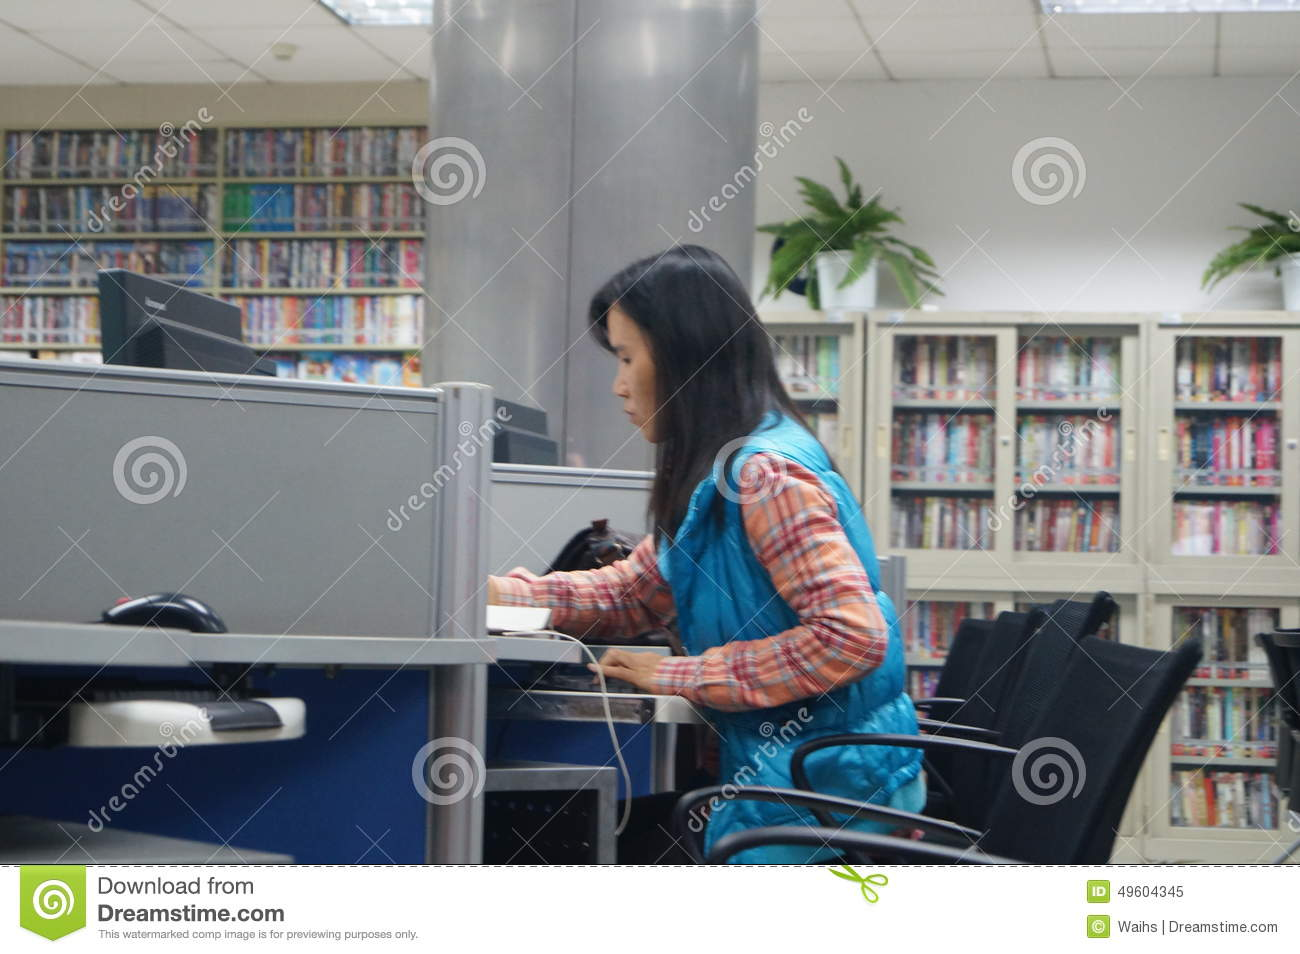 Shenzhen, China: Library of Internet cafes